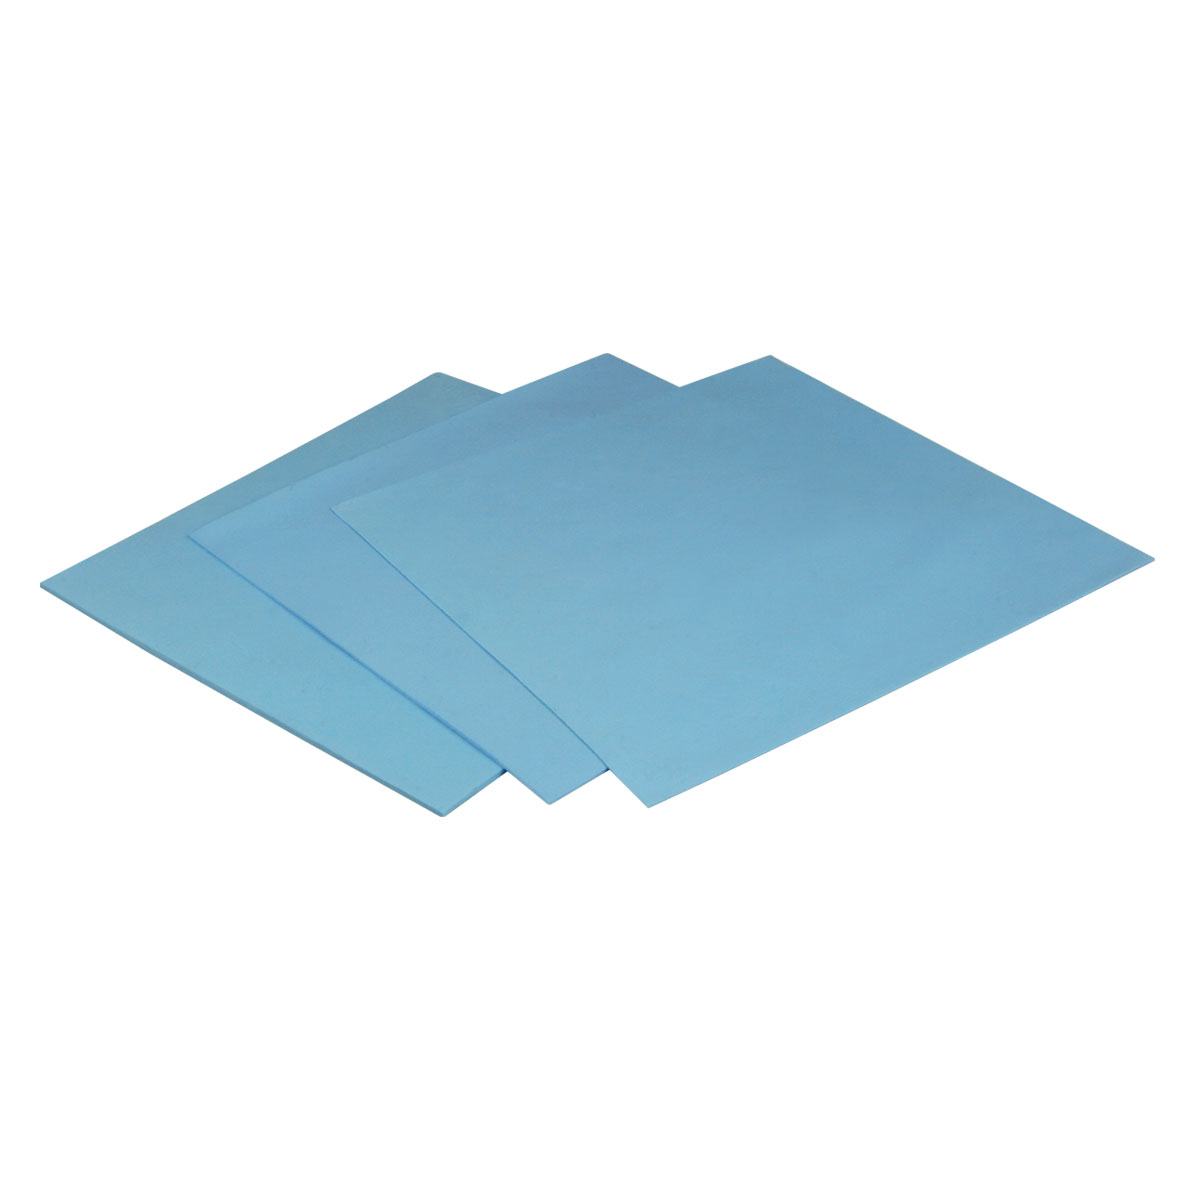 ACTPD00005A ARCTIC Thermal Pad 145 x 145 mm (1.0 mm) - High Performance Thermal Pad - Ent01